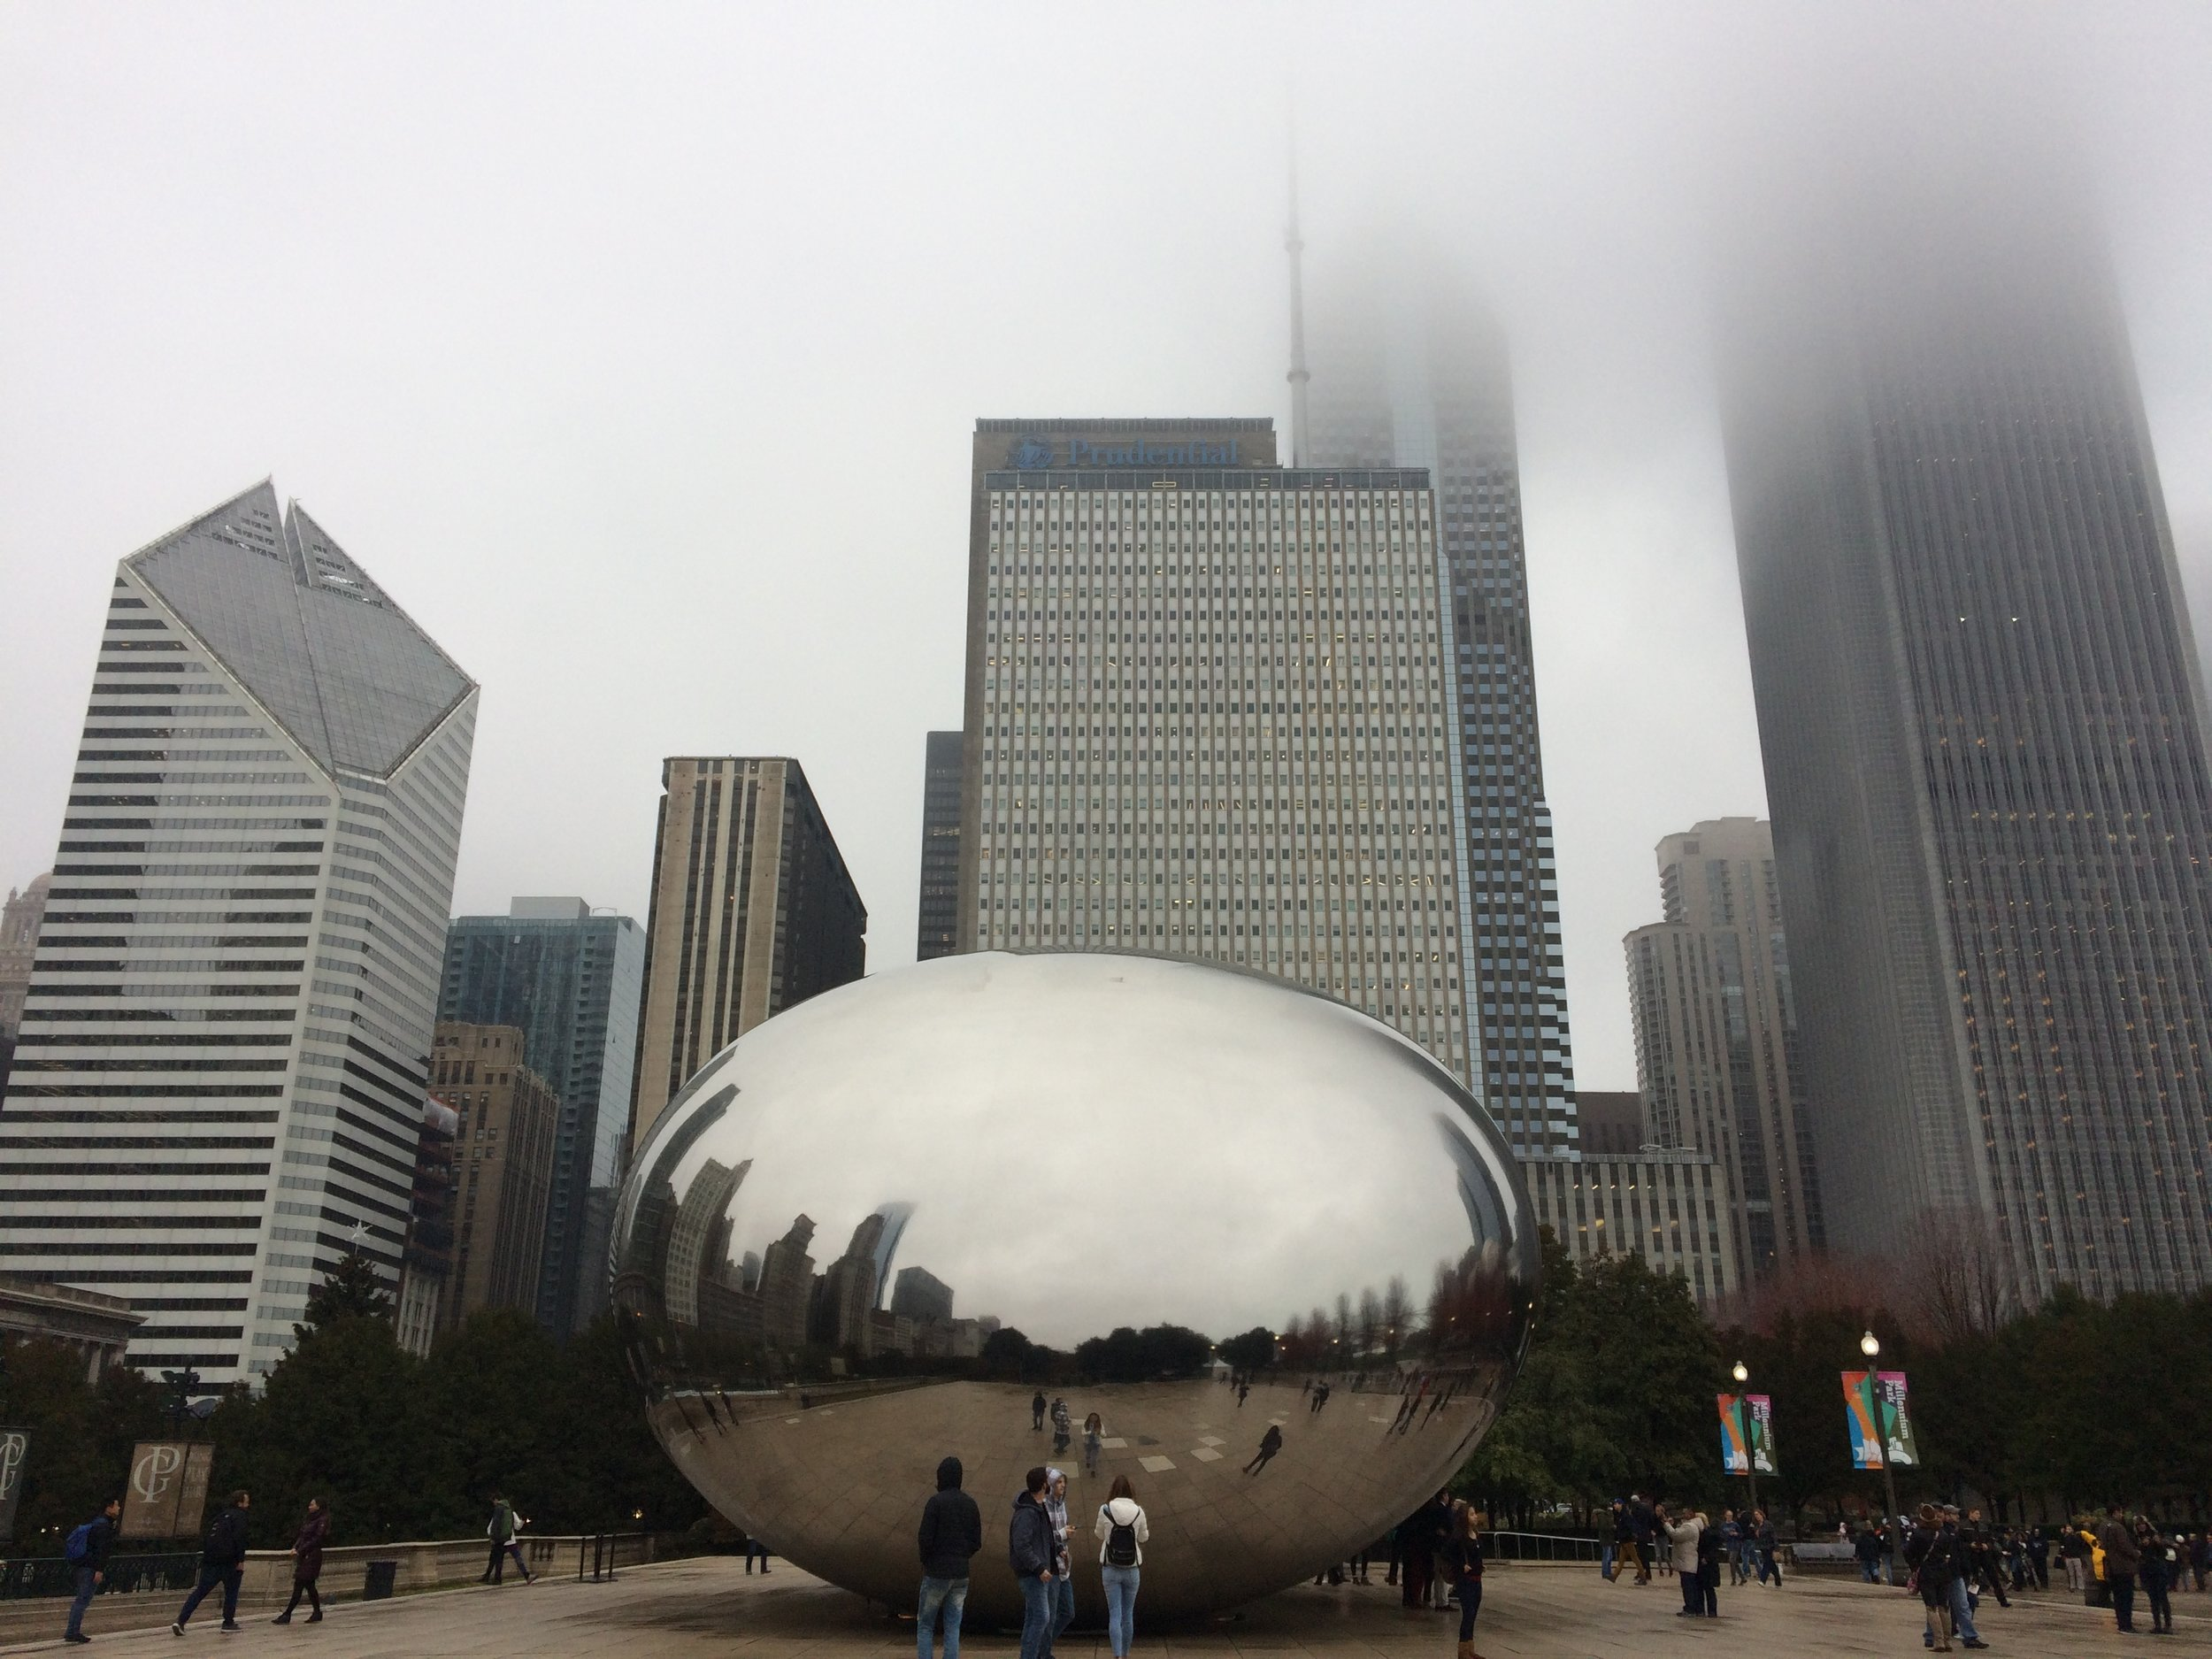 """Cloud Gate"" is the first piece of permanent, public art by artist Anish Kapoor to be installed in the U.S."